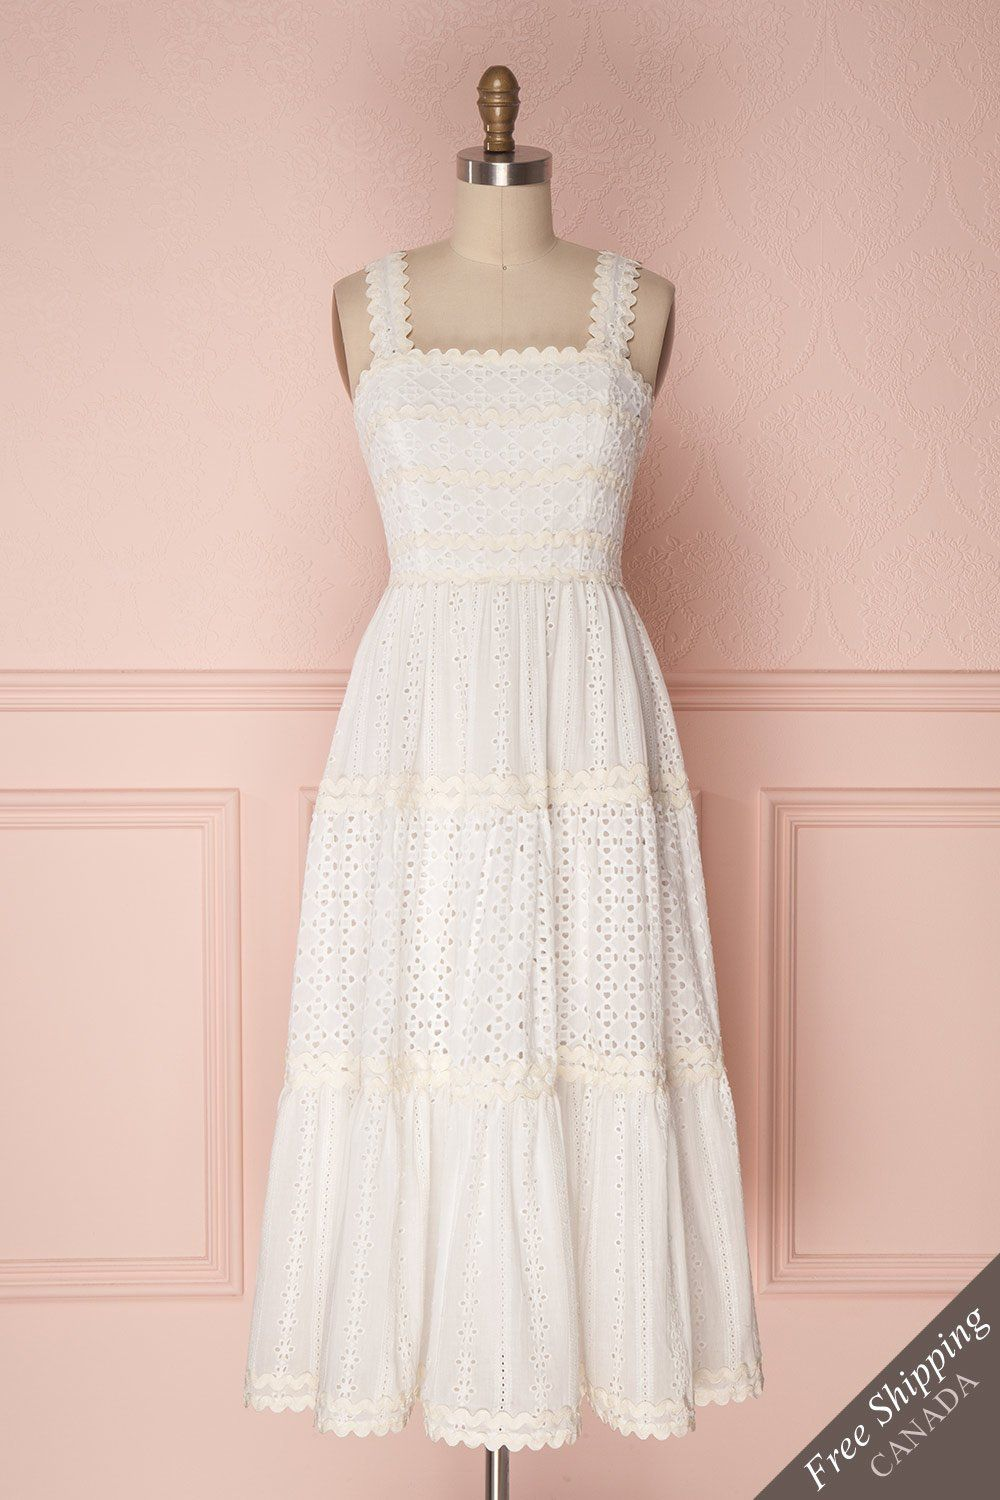 c9b46cd5f41 Chikma White  boutique1861  dress  white  lace  summer  summerdress  aline   embroidery  ribbons